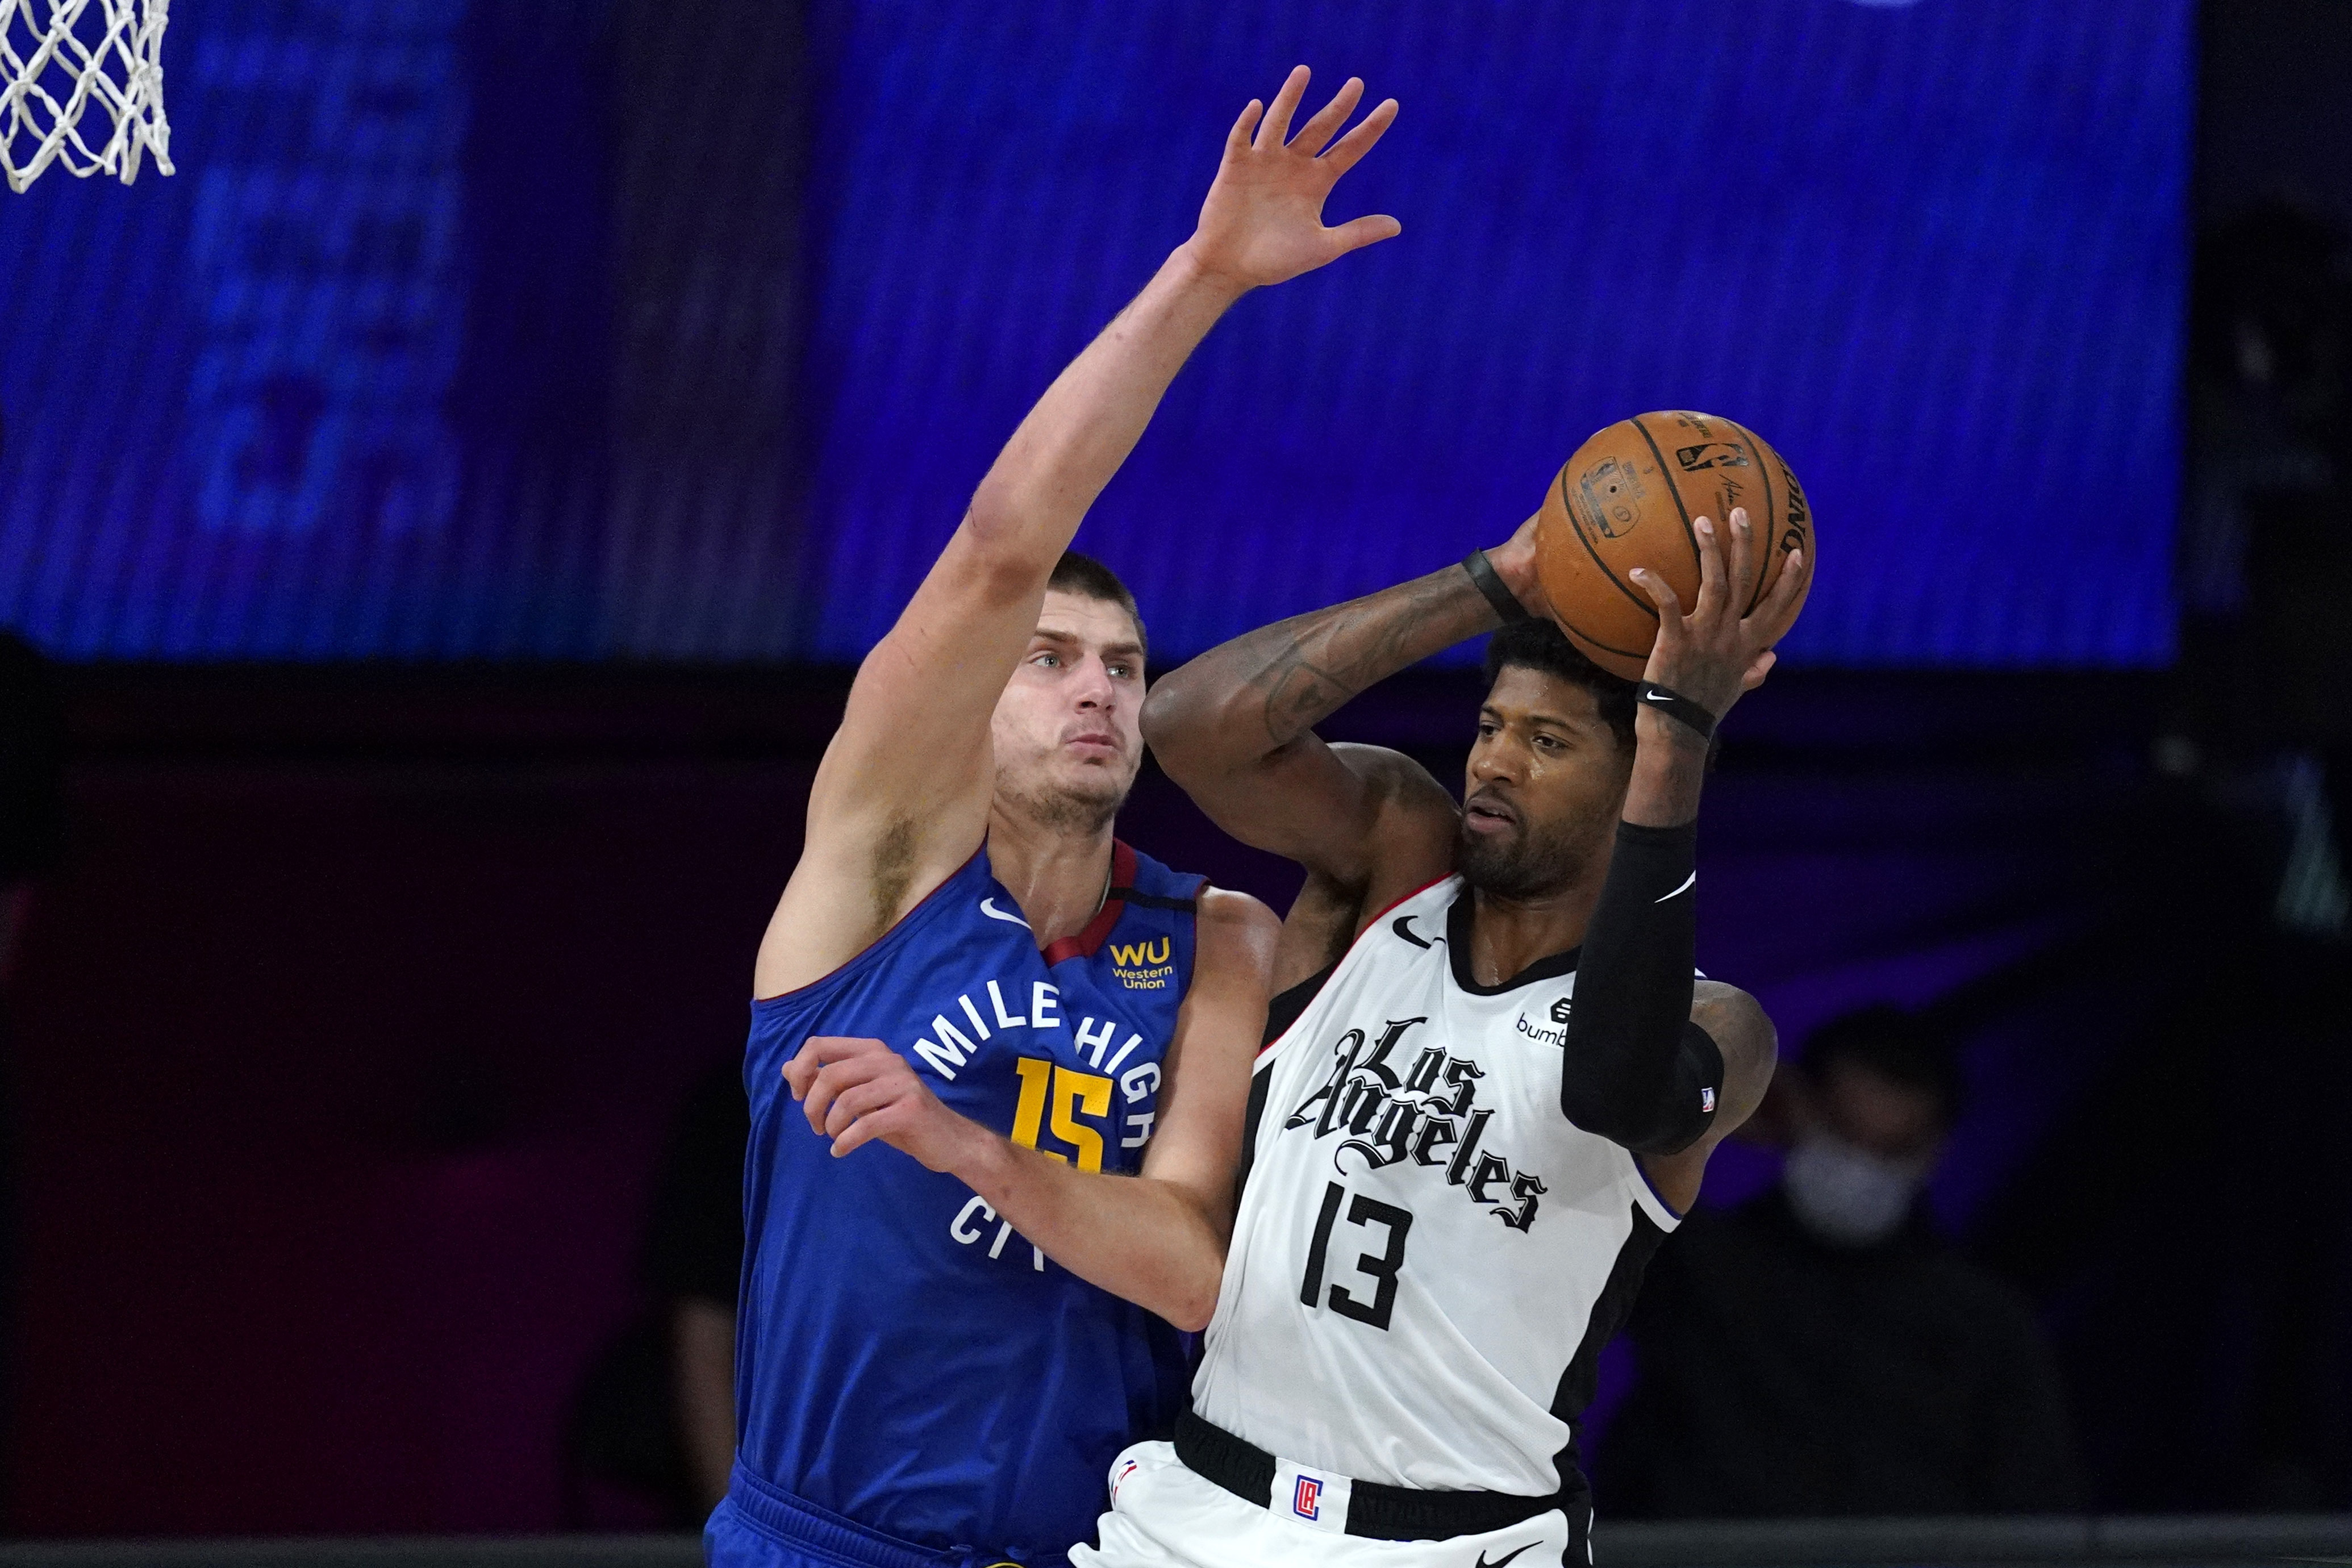 Denver Nuggets vs. Los Angeles Clippers Game 6 FREE LIVE STREAM (9/13/20):  Watch NBA Playoffs online